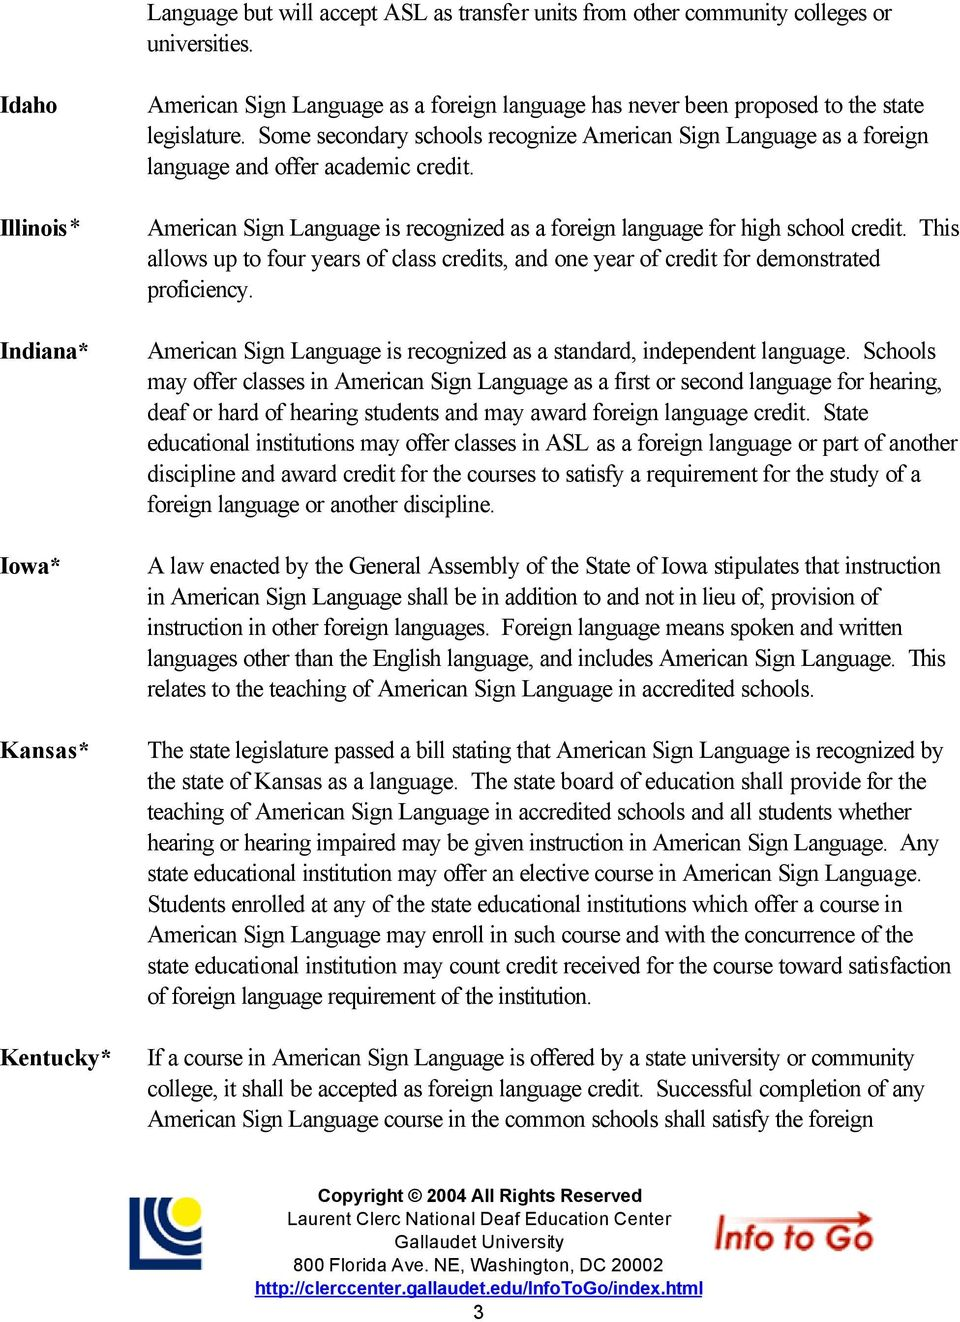 Some secondary schools recognize American Sign Language as a foreign language and offer academic credit. American Sign Language is recognized as a foreign language for high school credit.